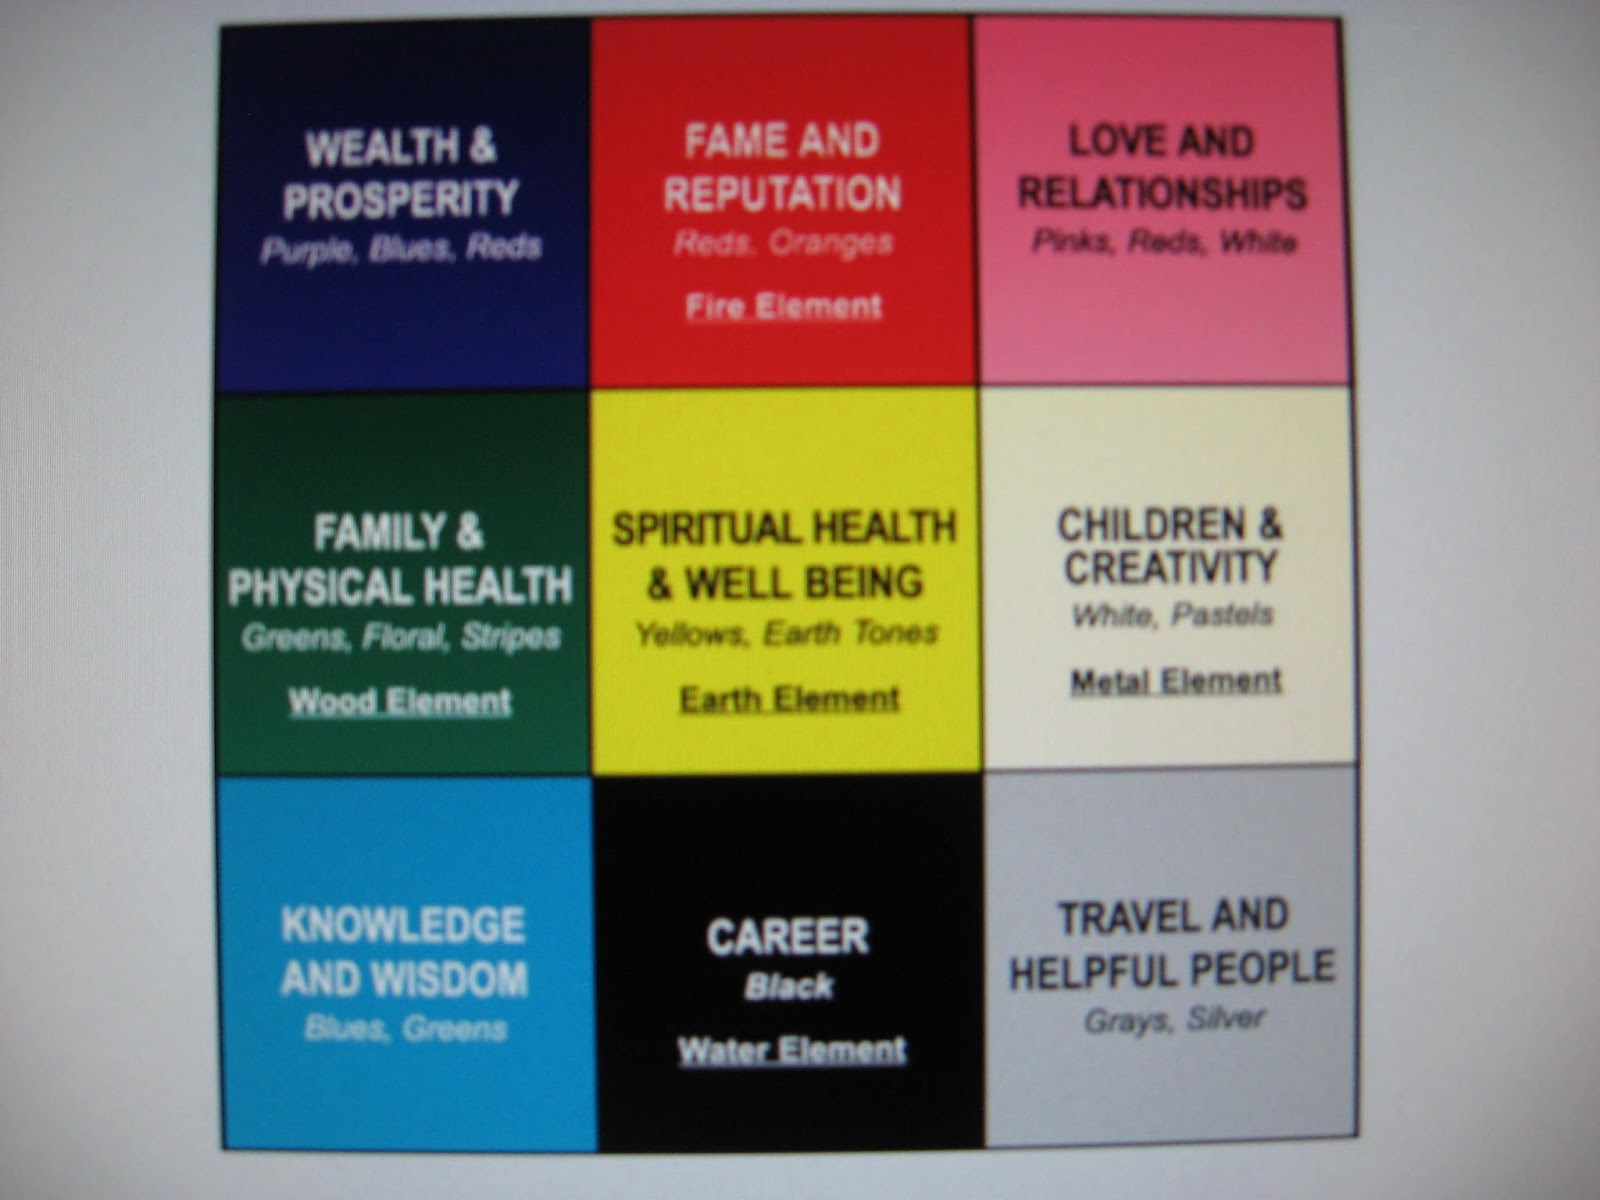 Feng Shui By Maria Quiet Feng Shui Knowledge And Self